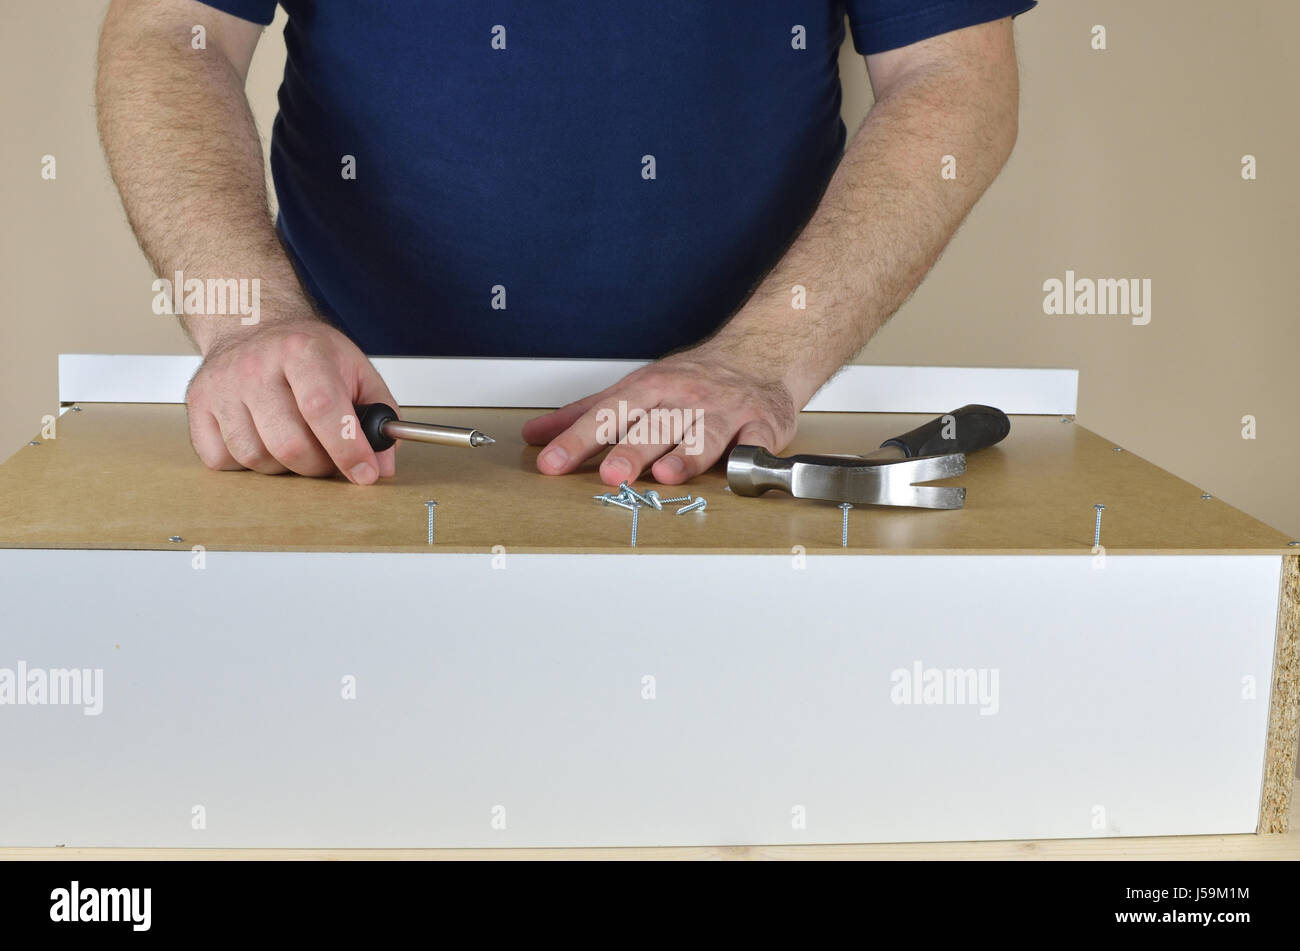 Man's hands on a drawer backside set on working table - Stock Image